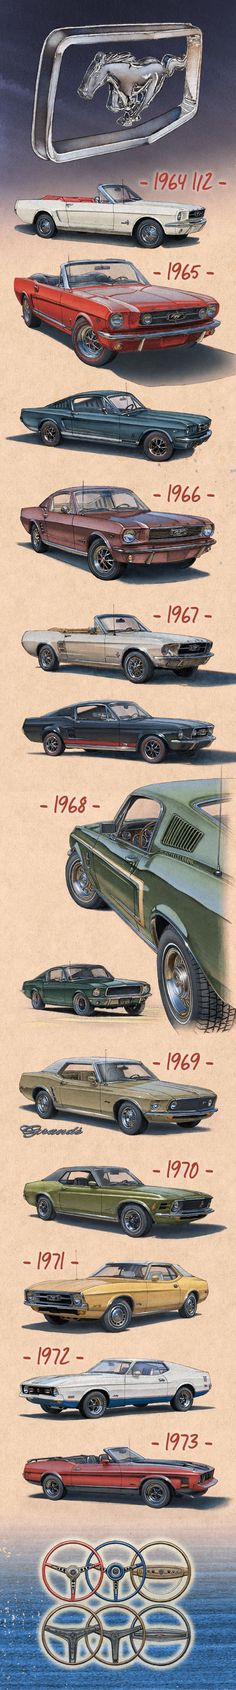 Classic Ford Mustangs #shelbyclassiccars